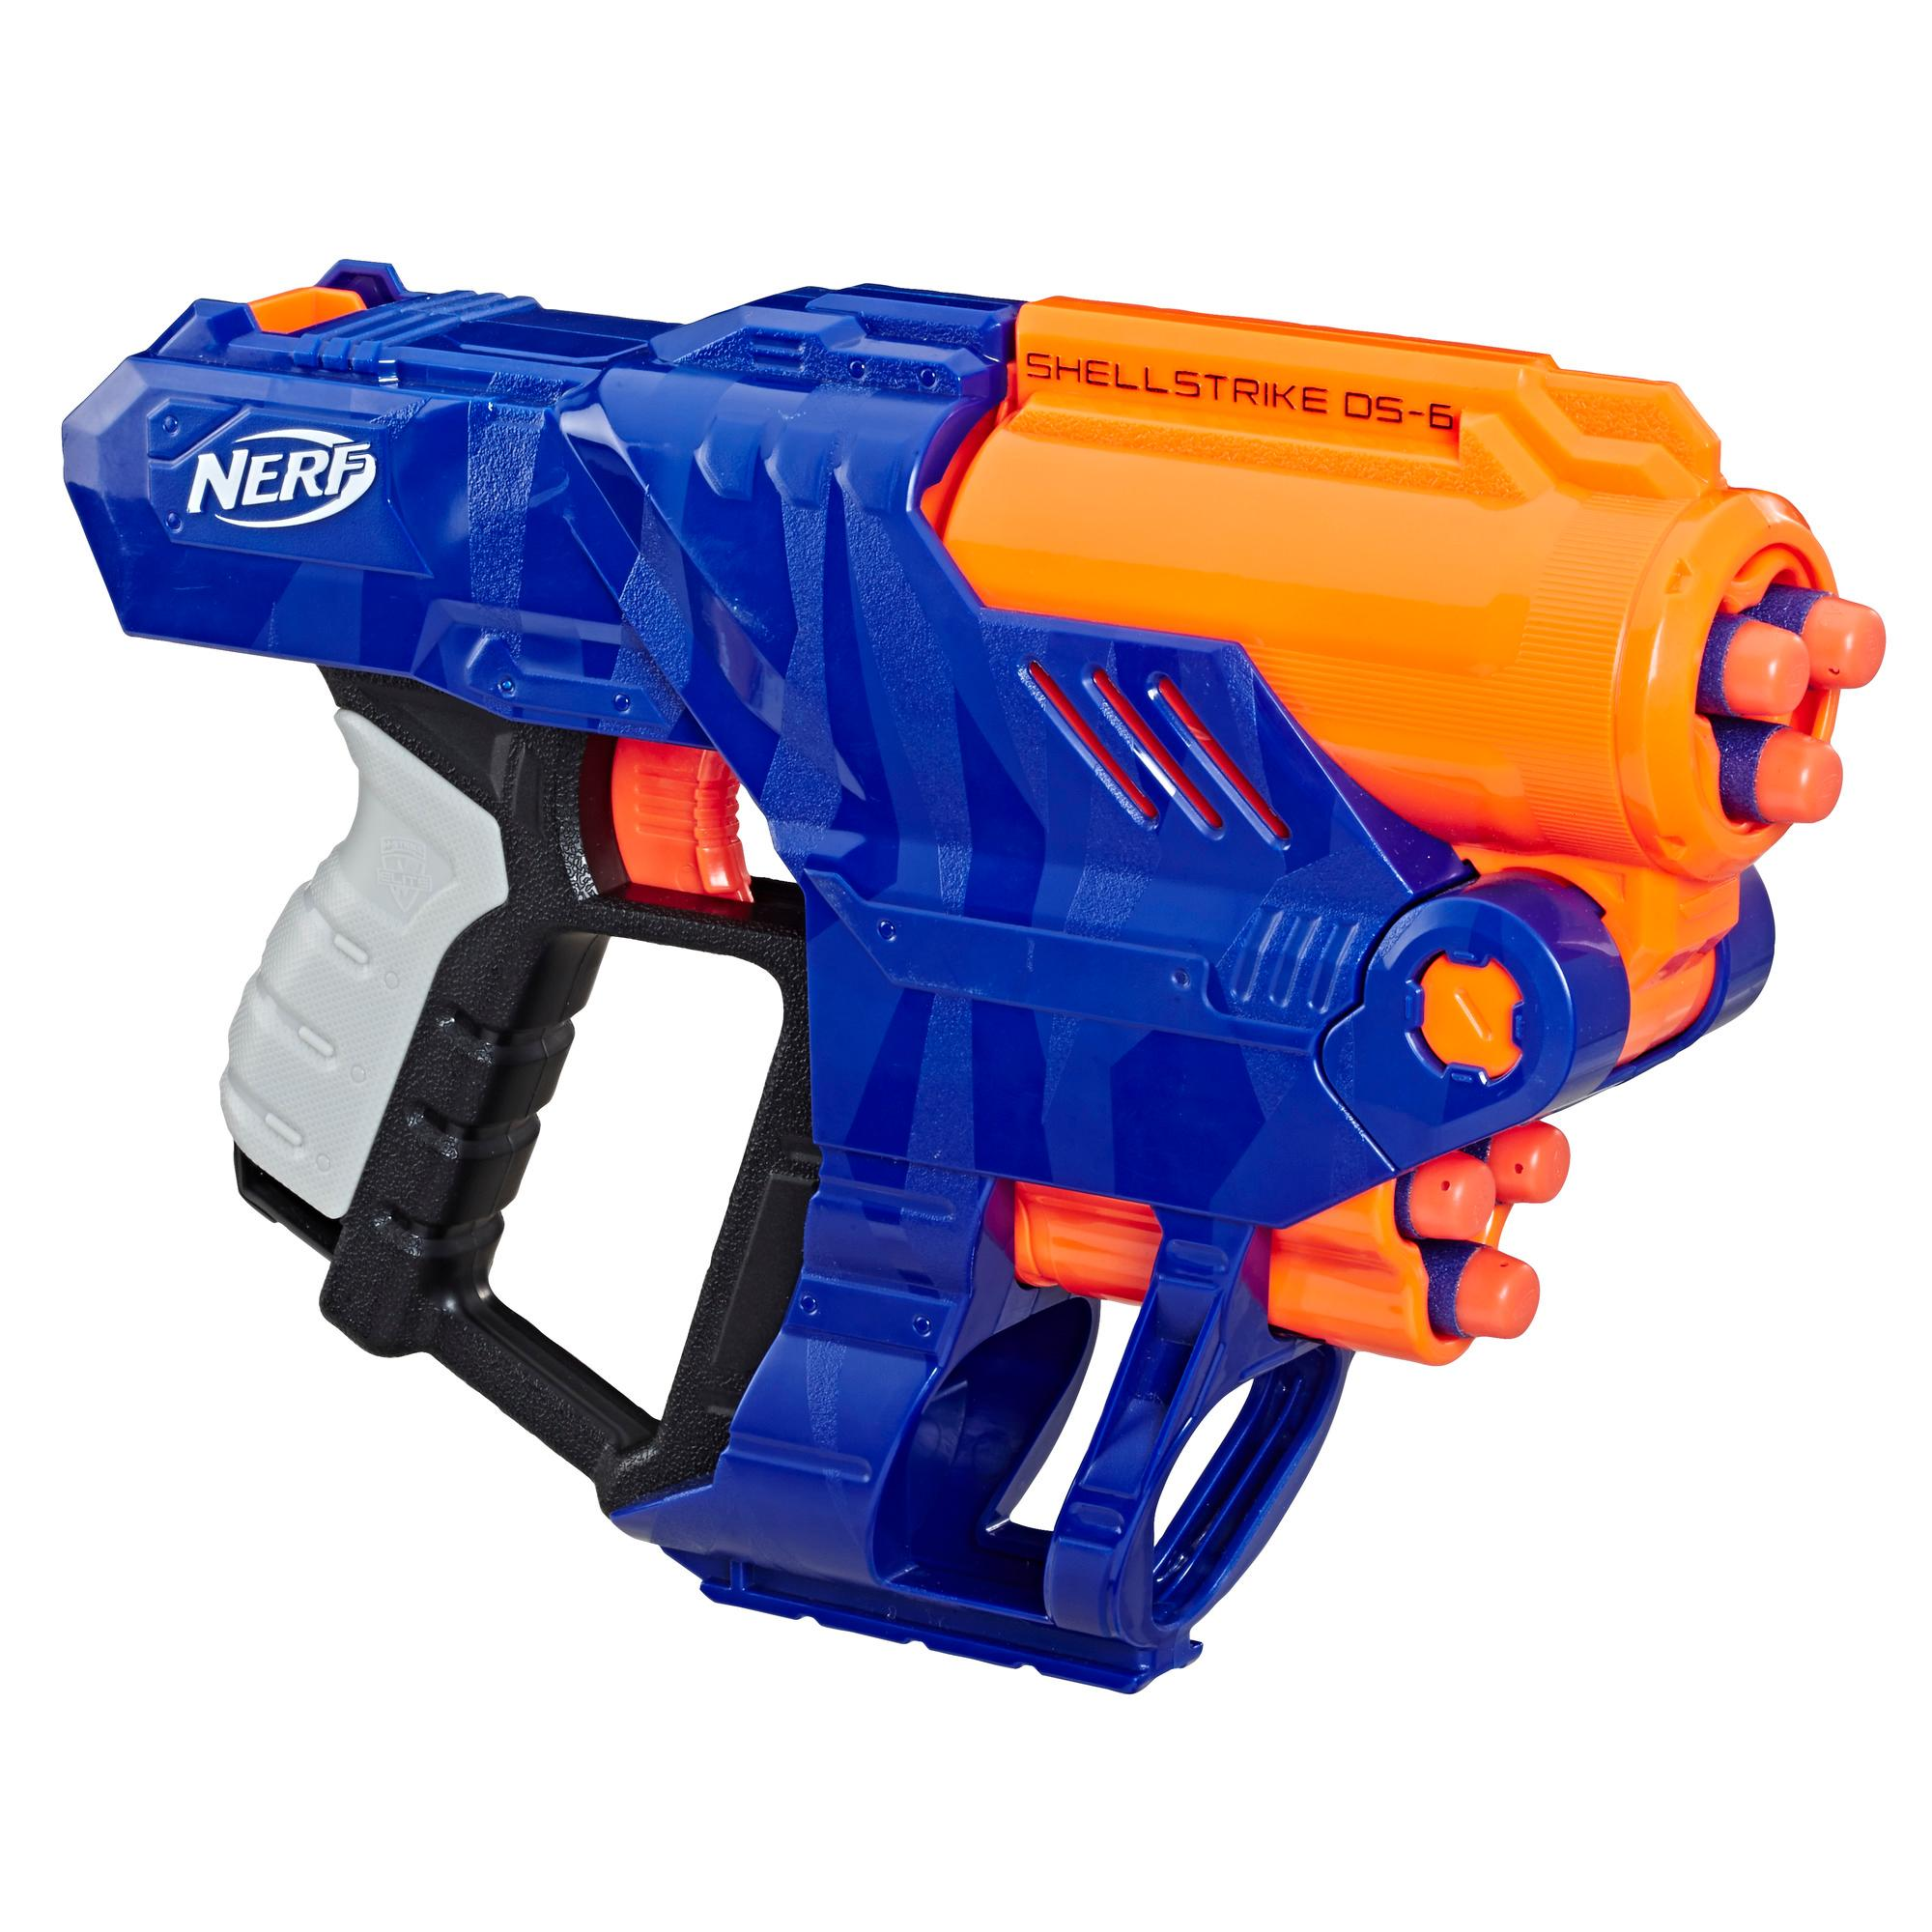 Nerf Elite Shellstrike DS-6 Blaster